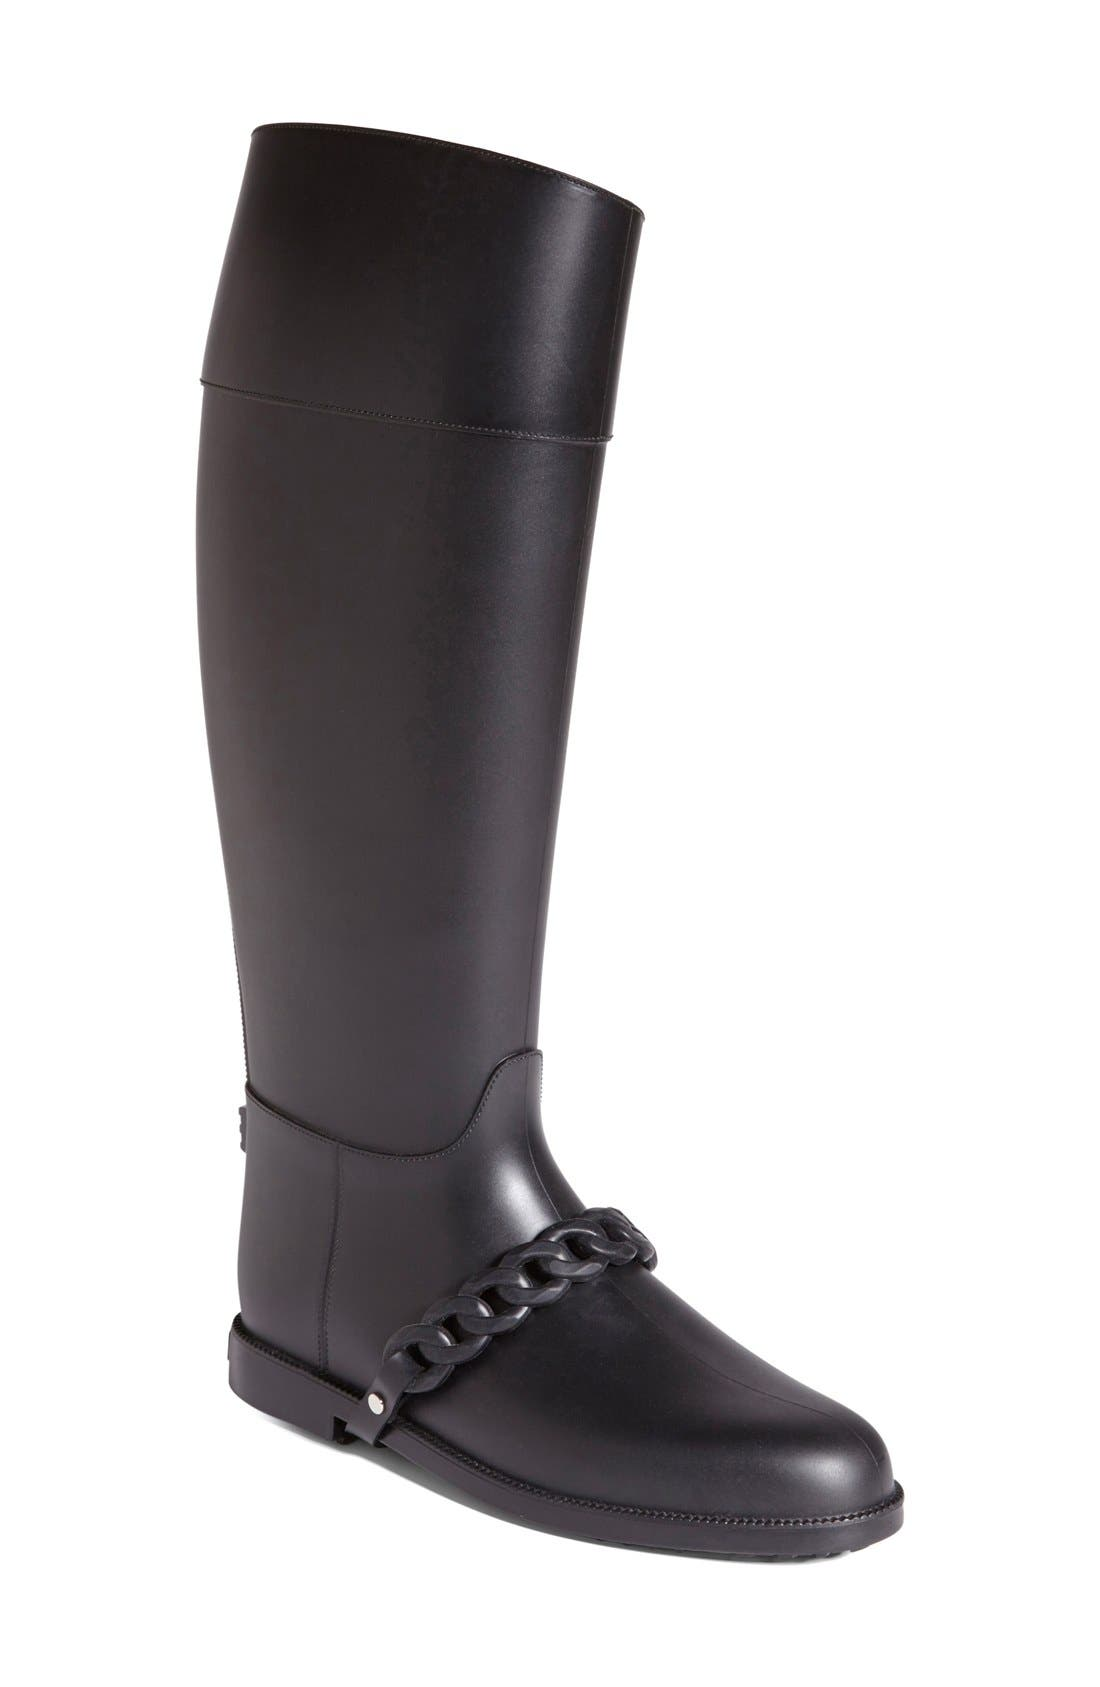 Alternate Image 1 Selected - Givenchy 'Eva Chain' Tall Rain Boot (Women)